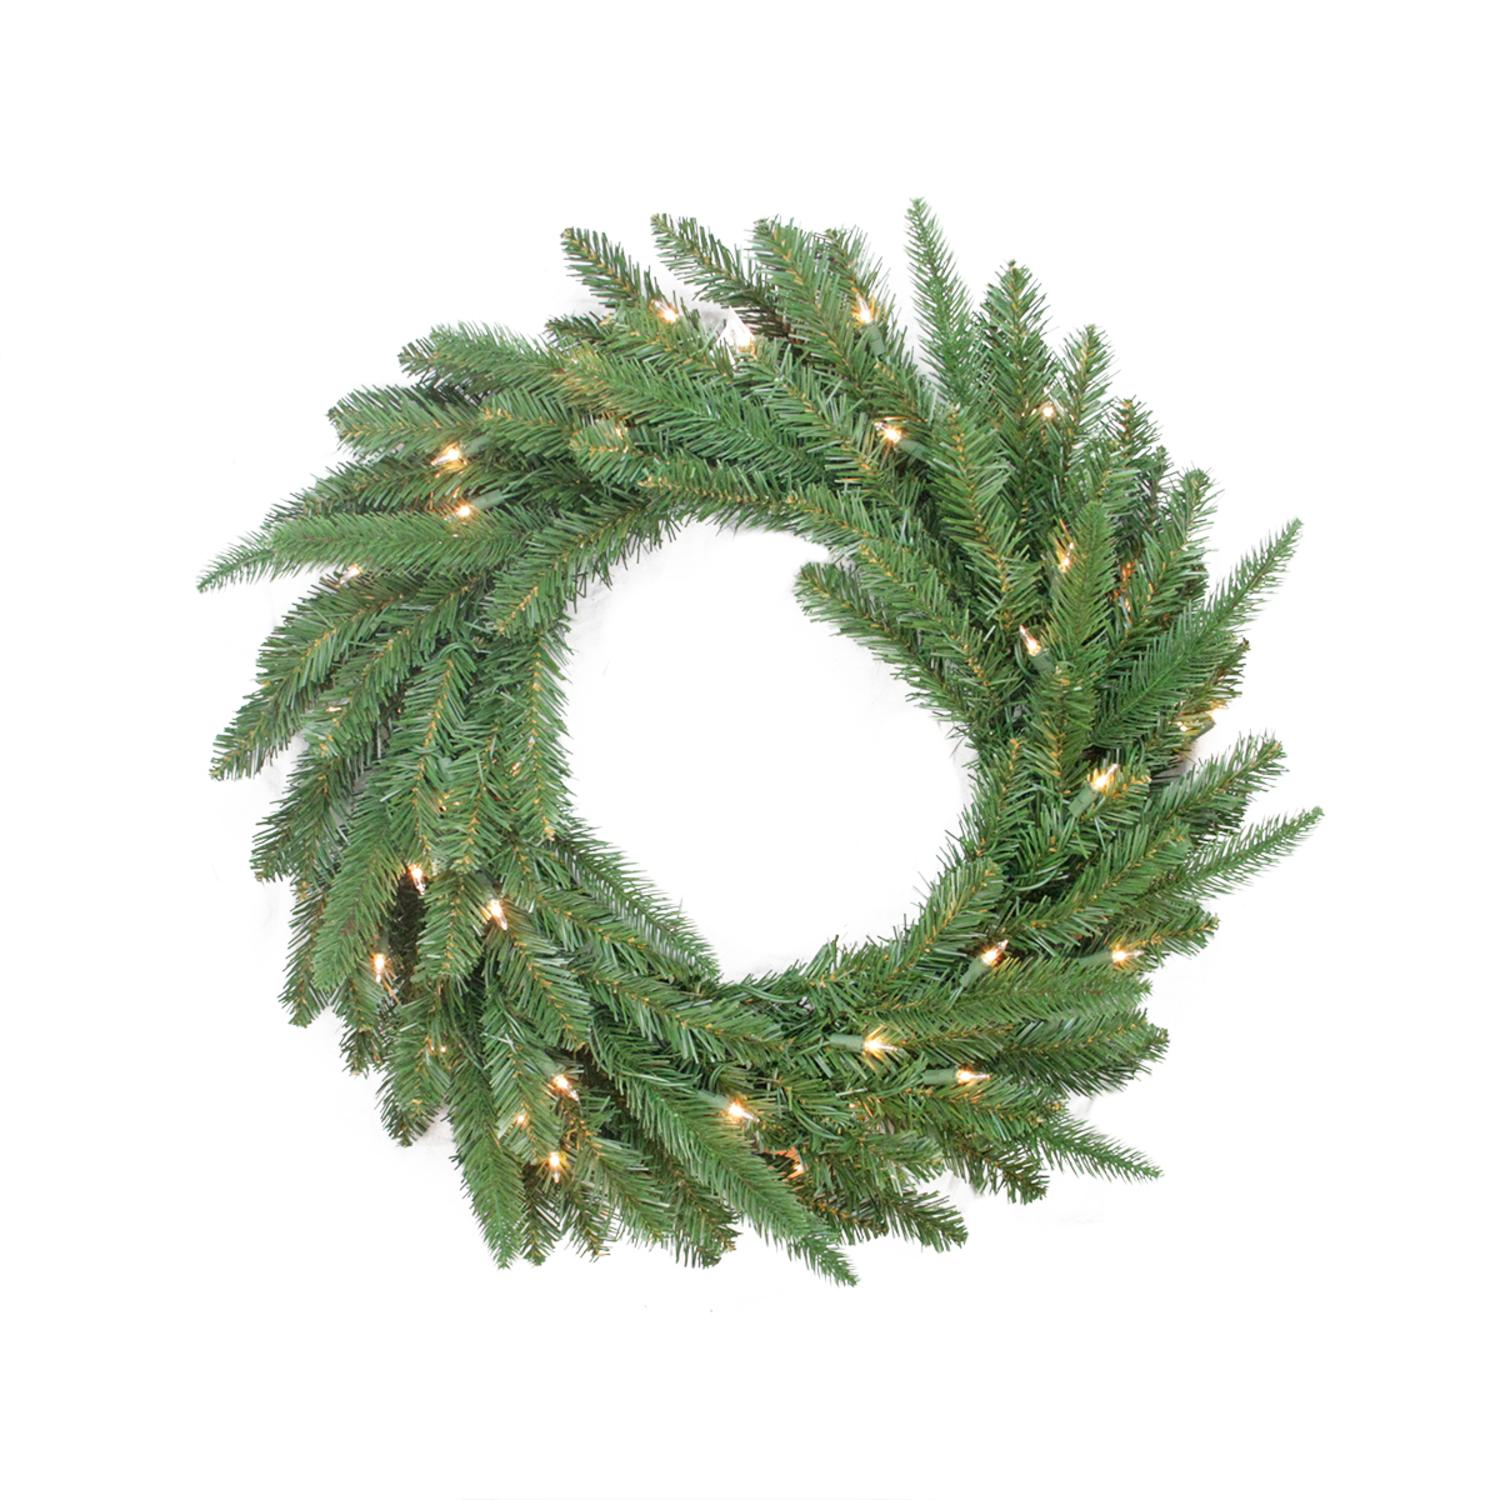 """24"""" Pre-Lit PE/PVC Mixed Pine Artificial Christmas Wreath - Clear Lights - image 2 of 2"""